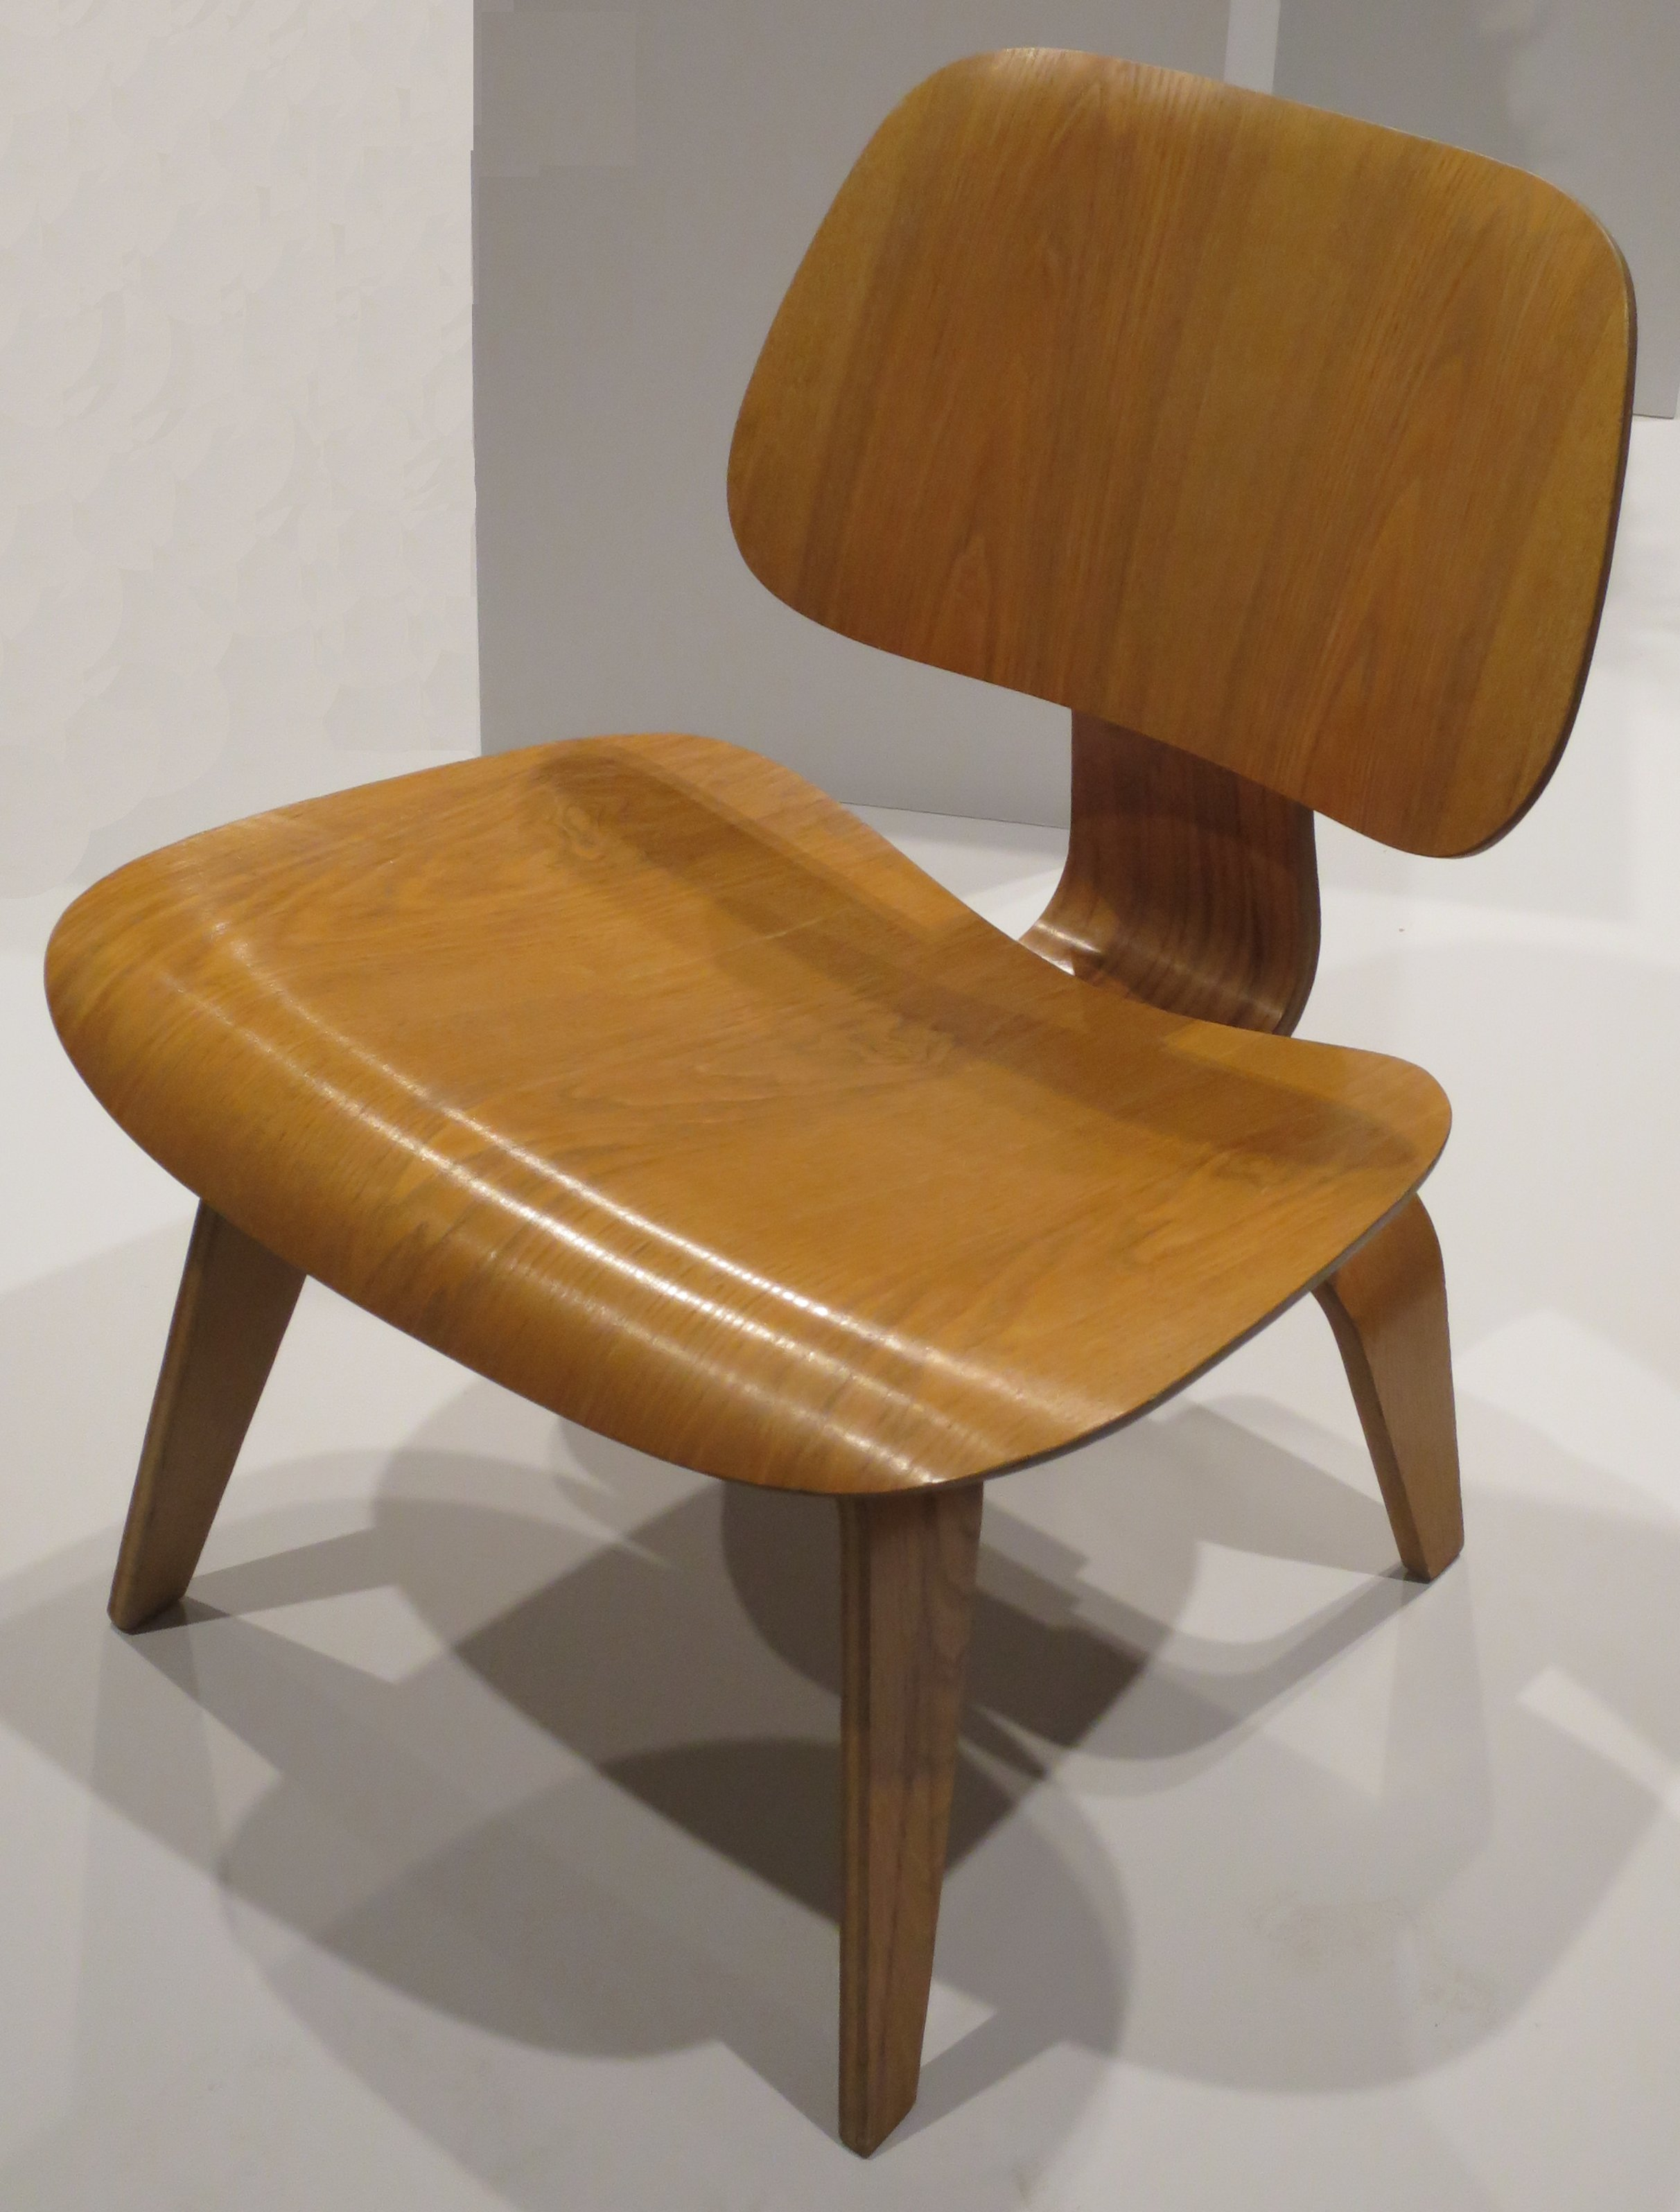 Charles & Ray Eames Sessel Eames Lounge Chair Wood Wikipedia